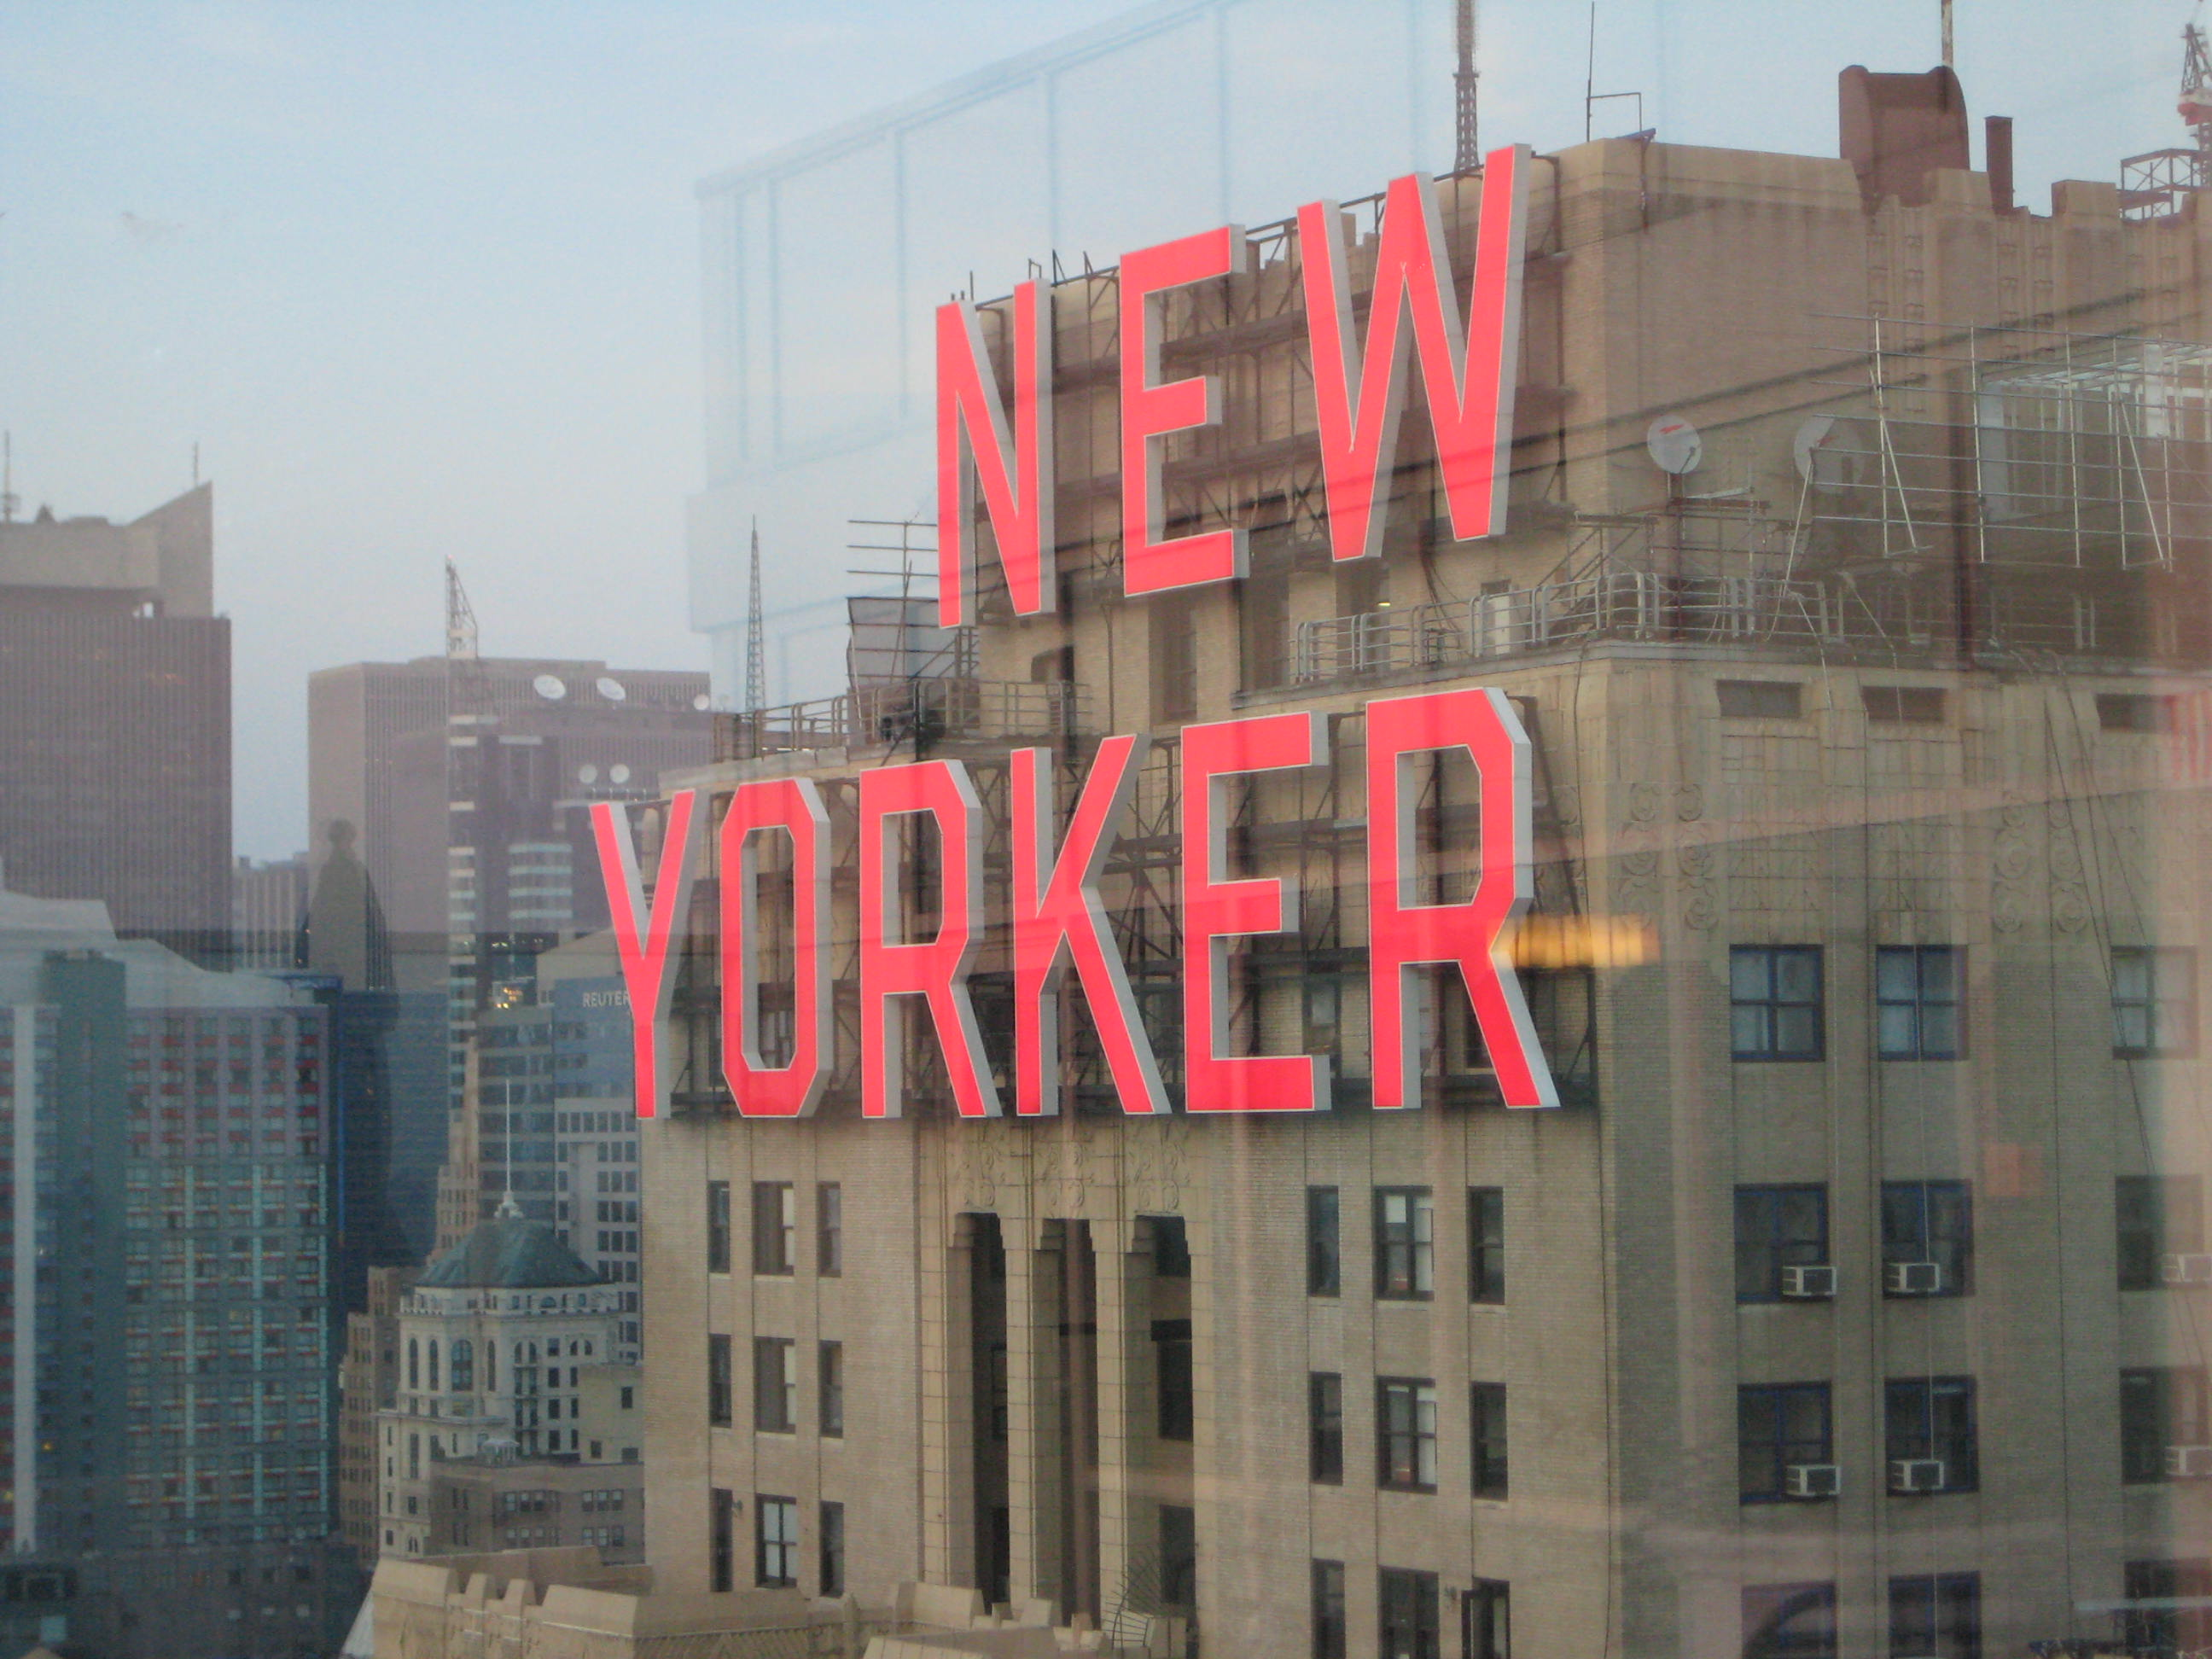 Out by Ten is as central a part of the New York performance scene as this New Yorker sign.